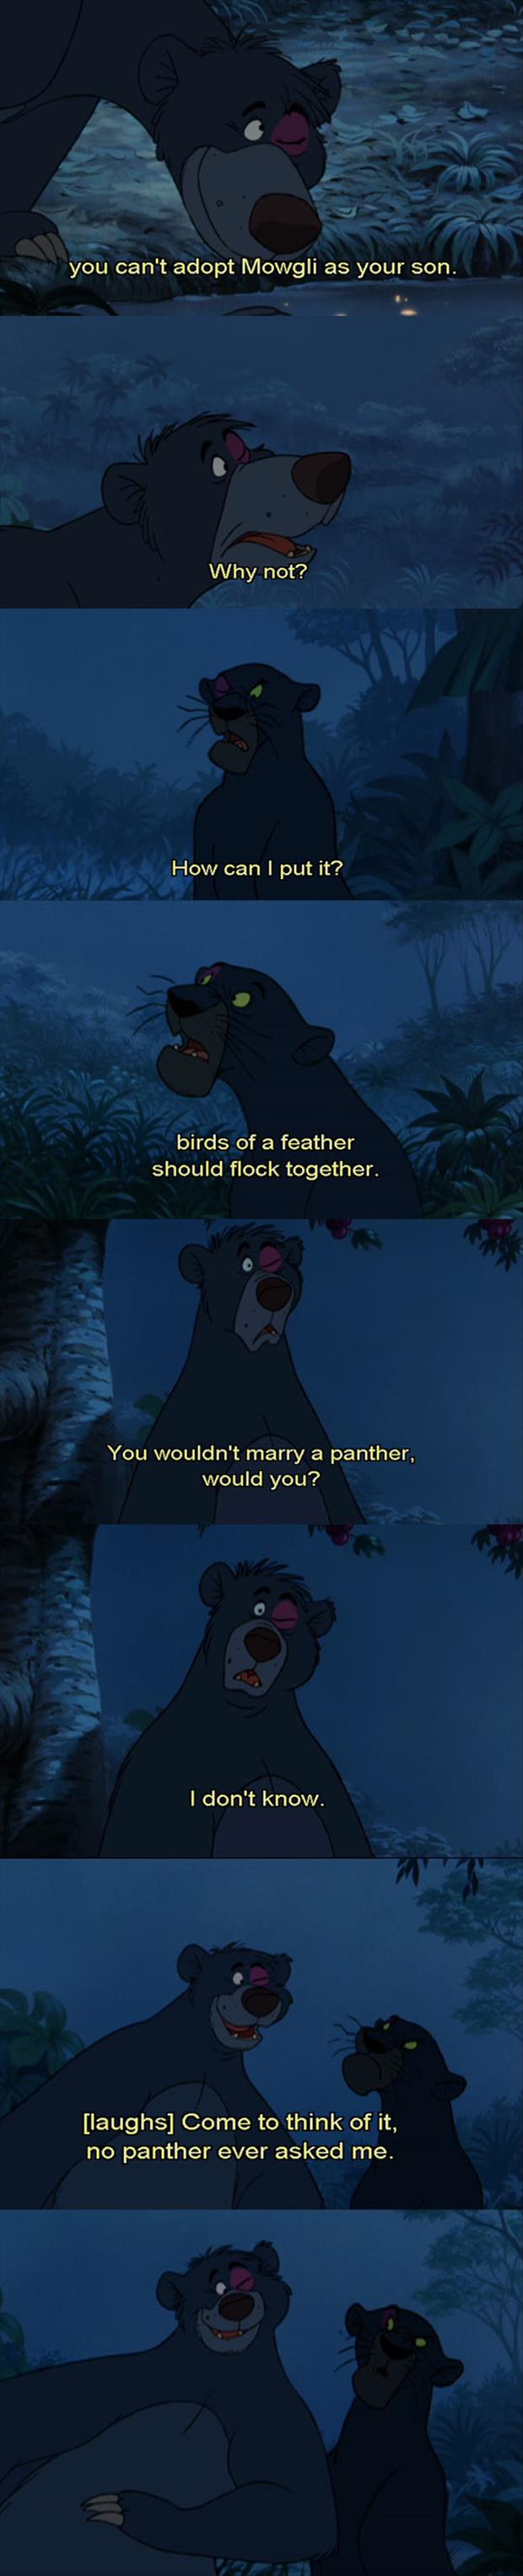 Jungle Book Quotes The Jungle Book Quotes  Dump A Day